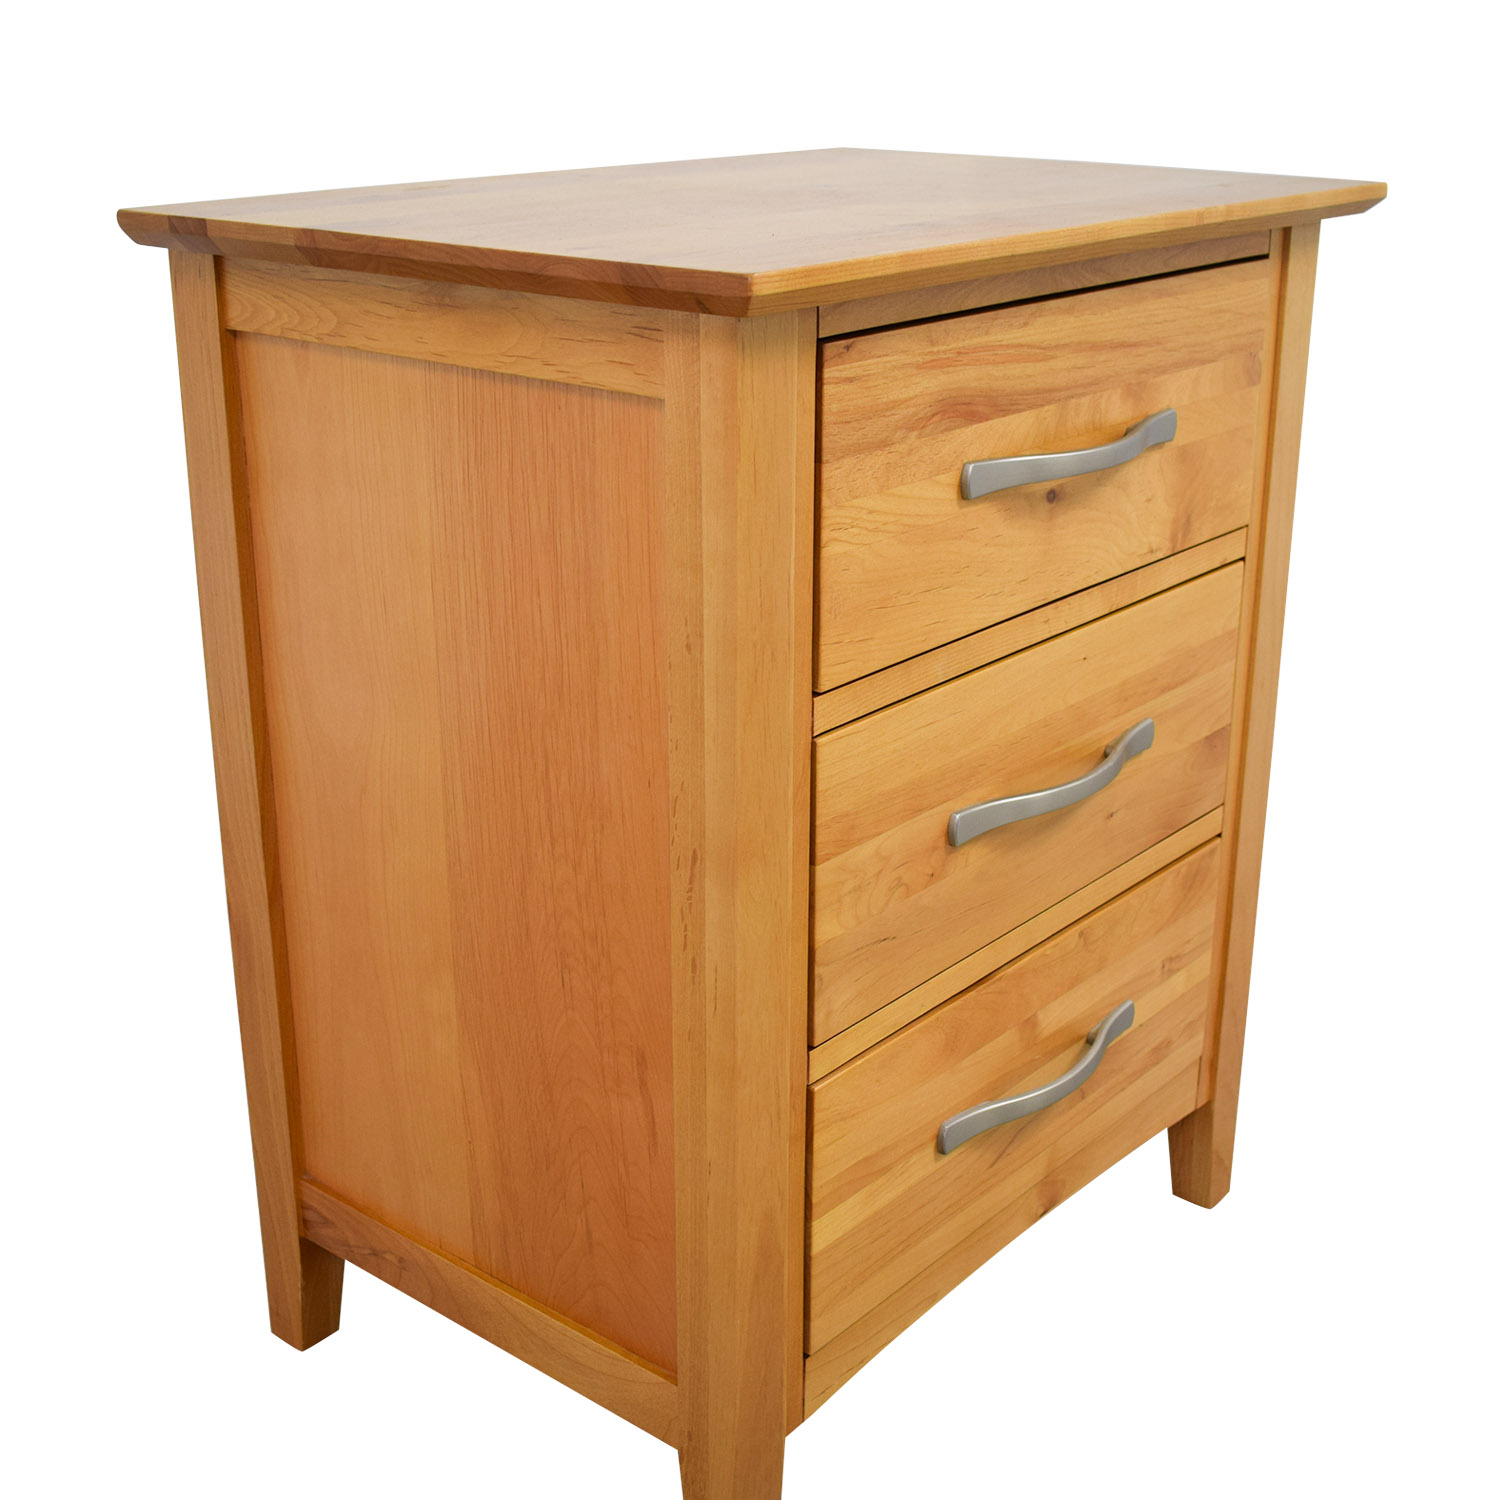 Raymour & Flanigan Raymour & Flanigan Everitt Natural Adler Three-Drawer Nightstand End Tables